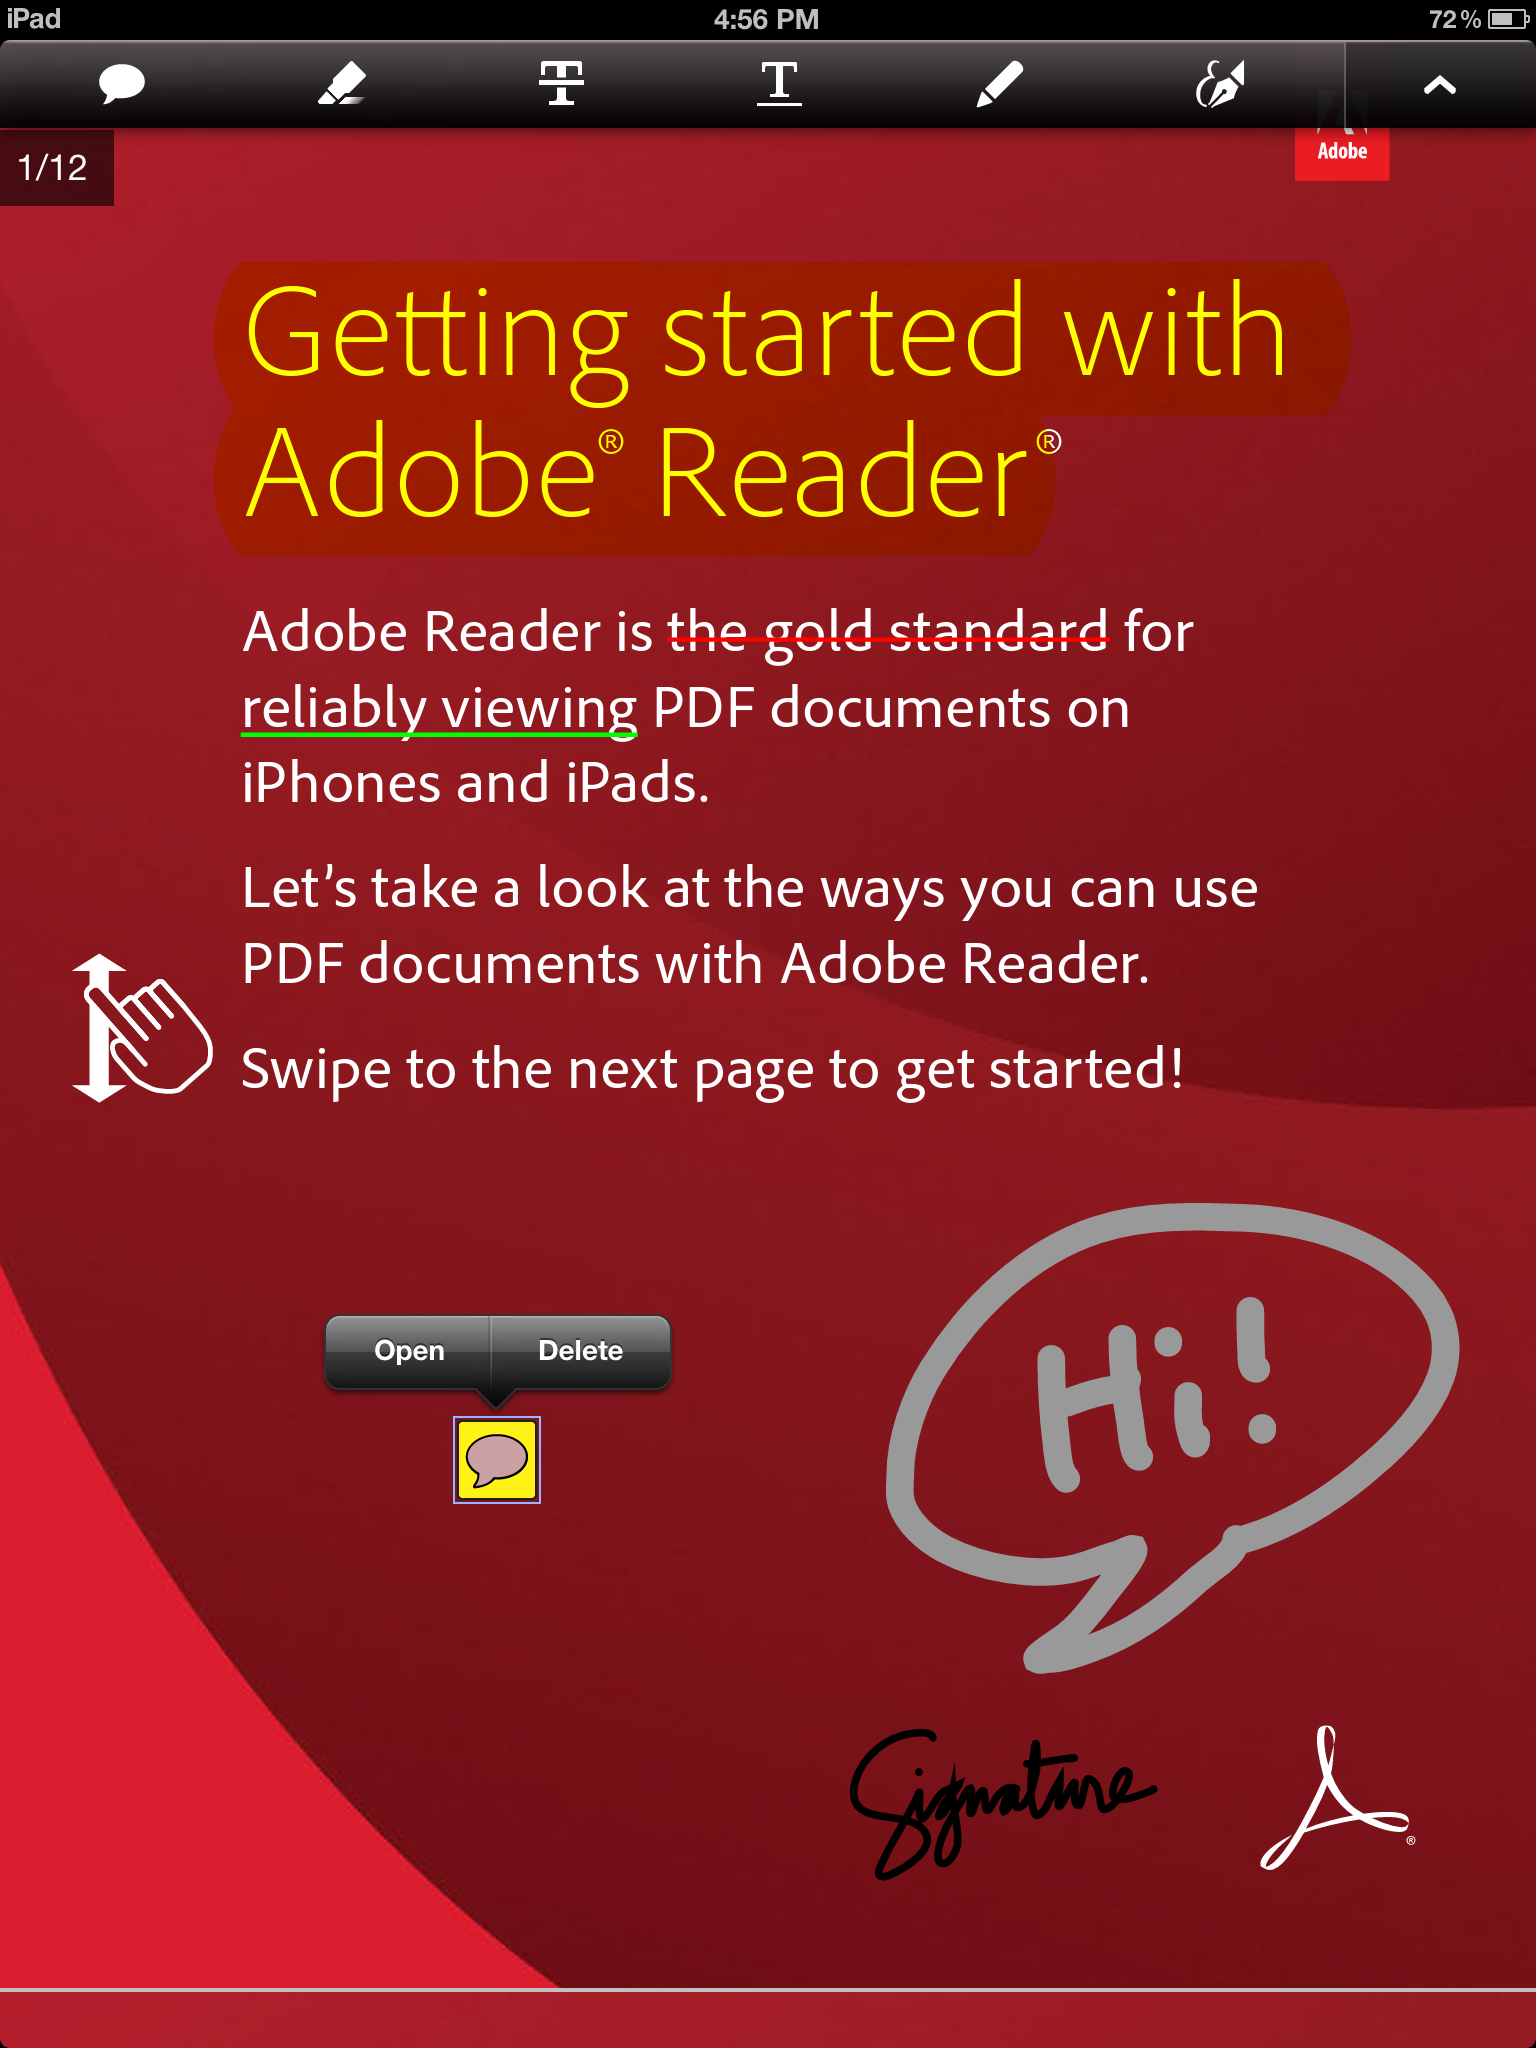 Adobe Reader For iOS Update Adds Annotation Tools And More Features